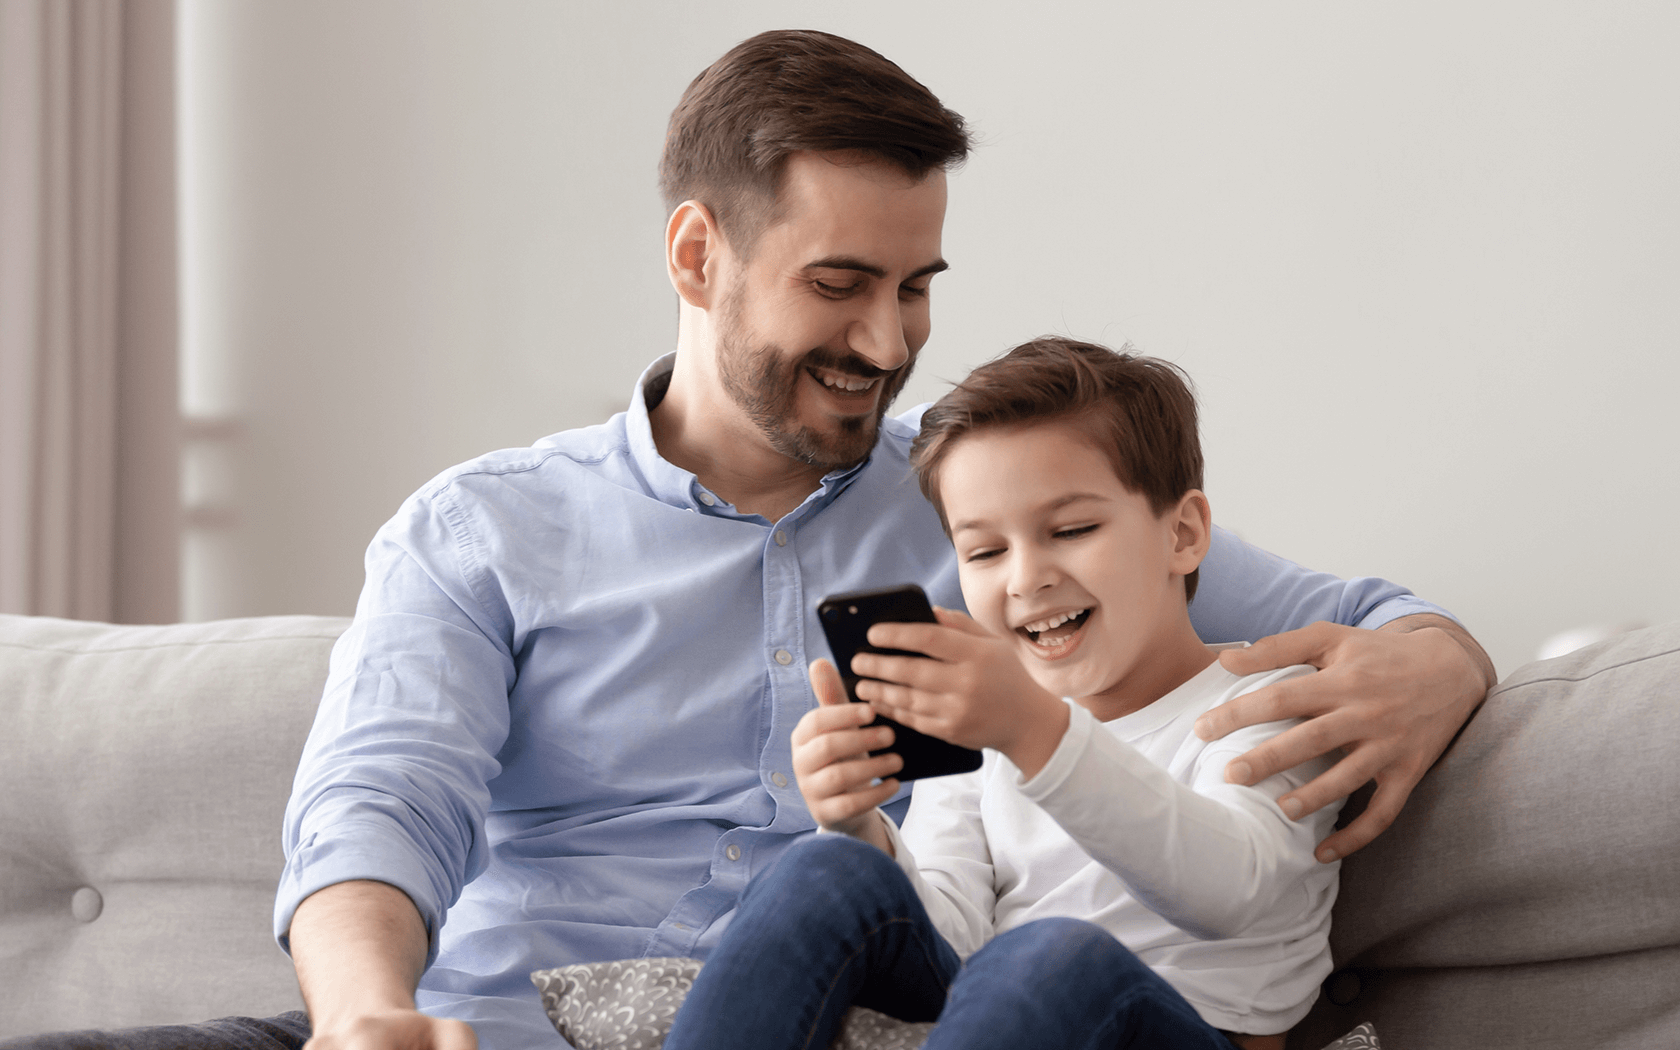 Screen Time During COVID: 10 Conversations to Have with Your Kids